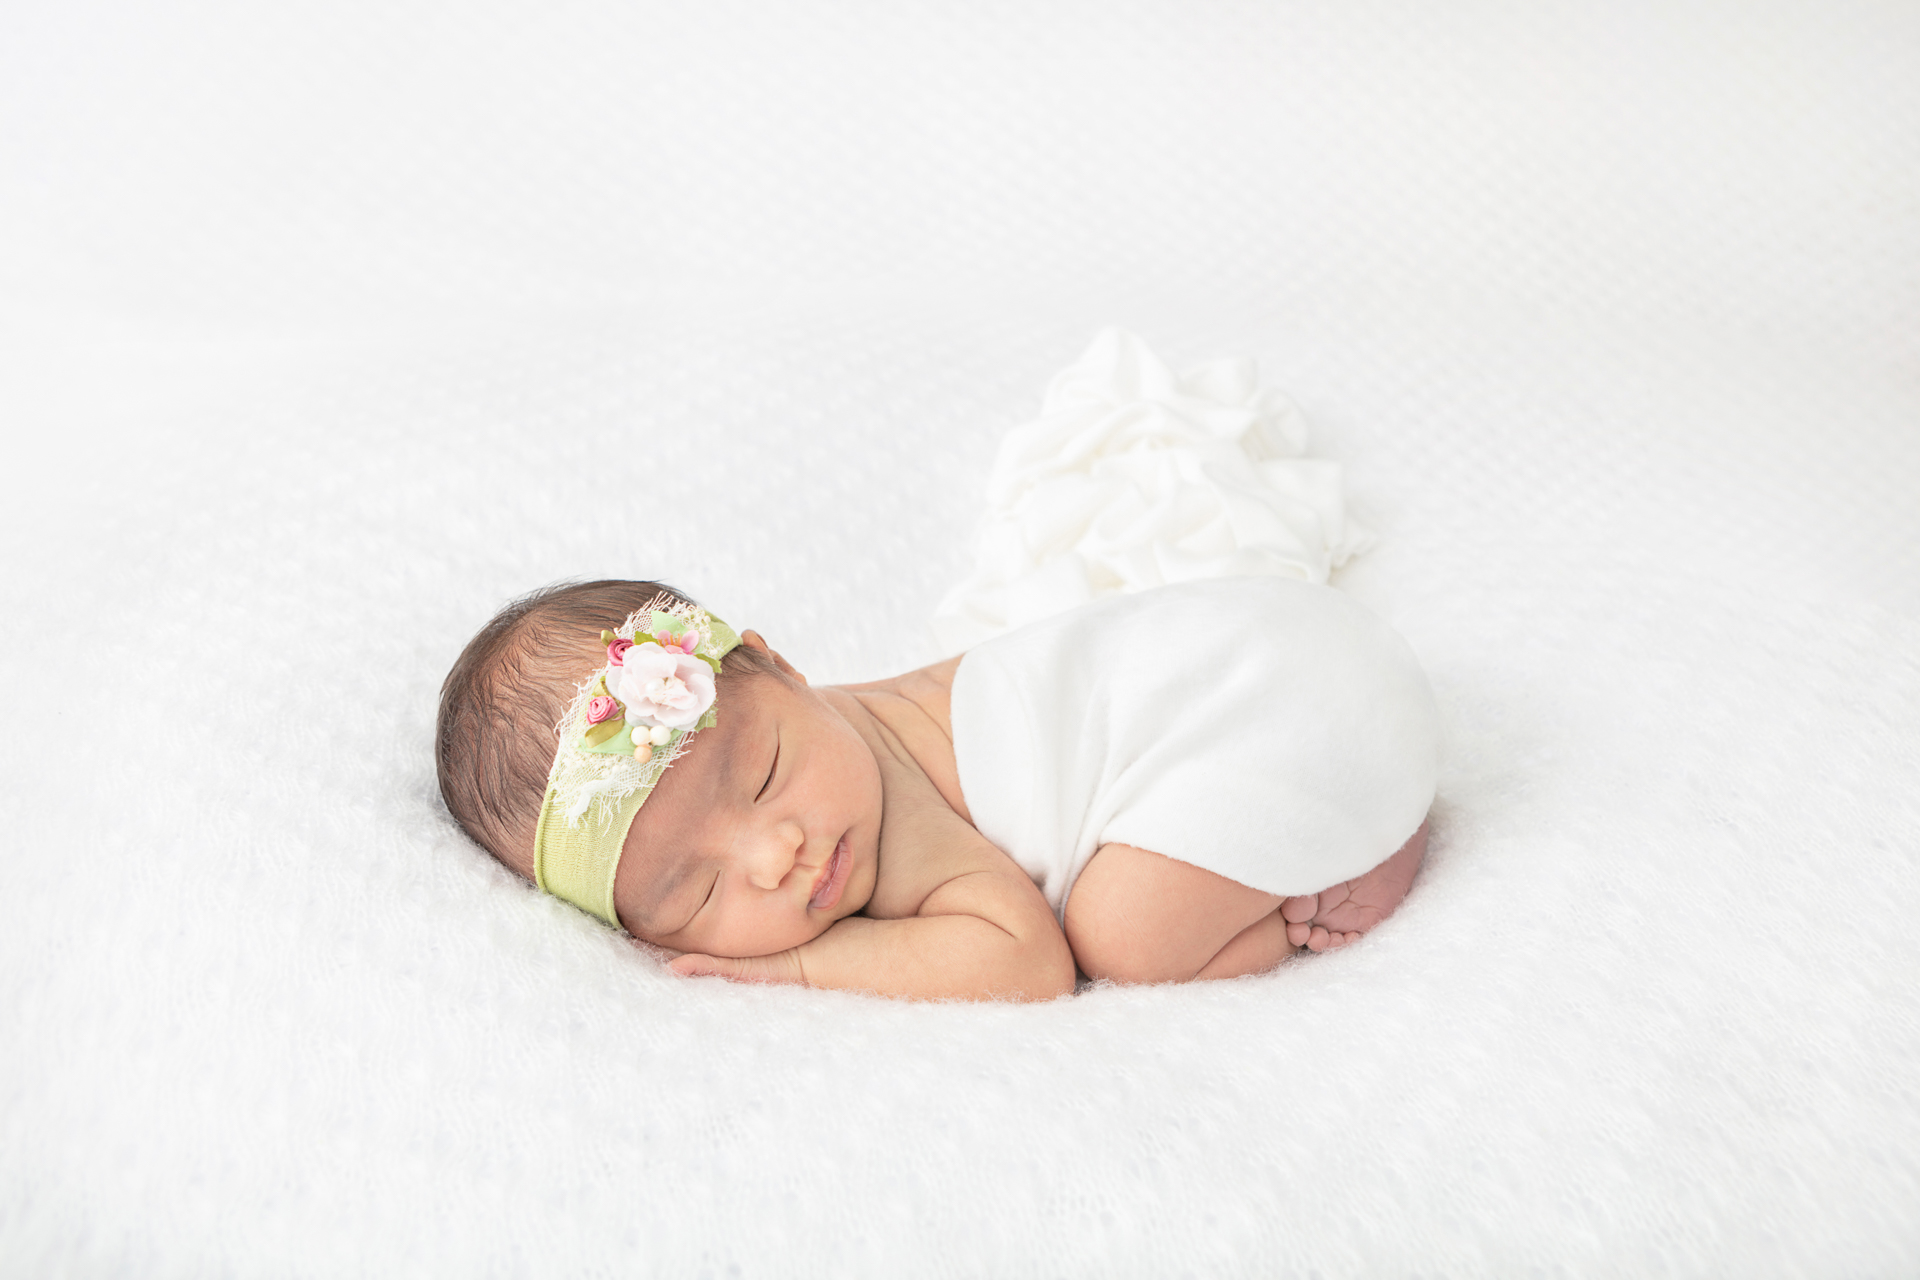 newborn baby girl with dark hair wearing a lime green stretchy headband with white and pink florals